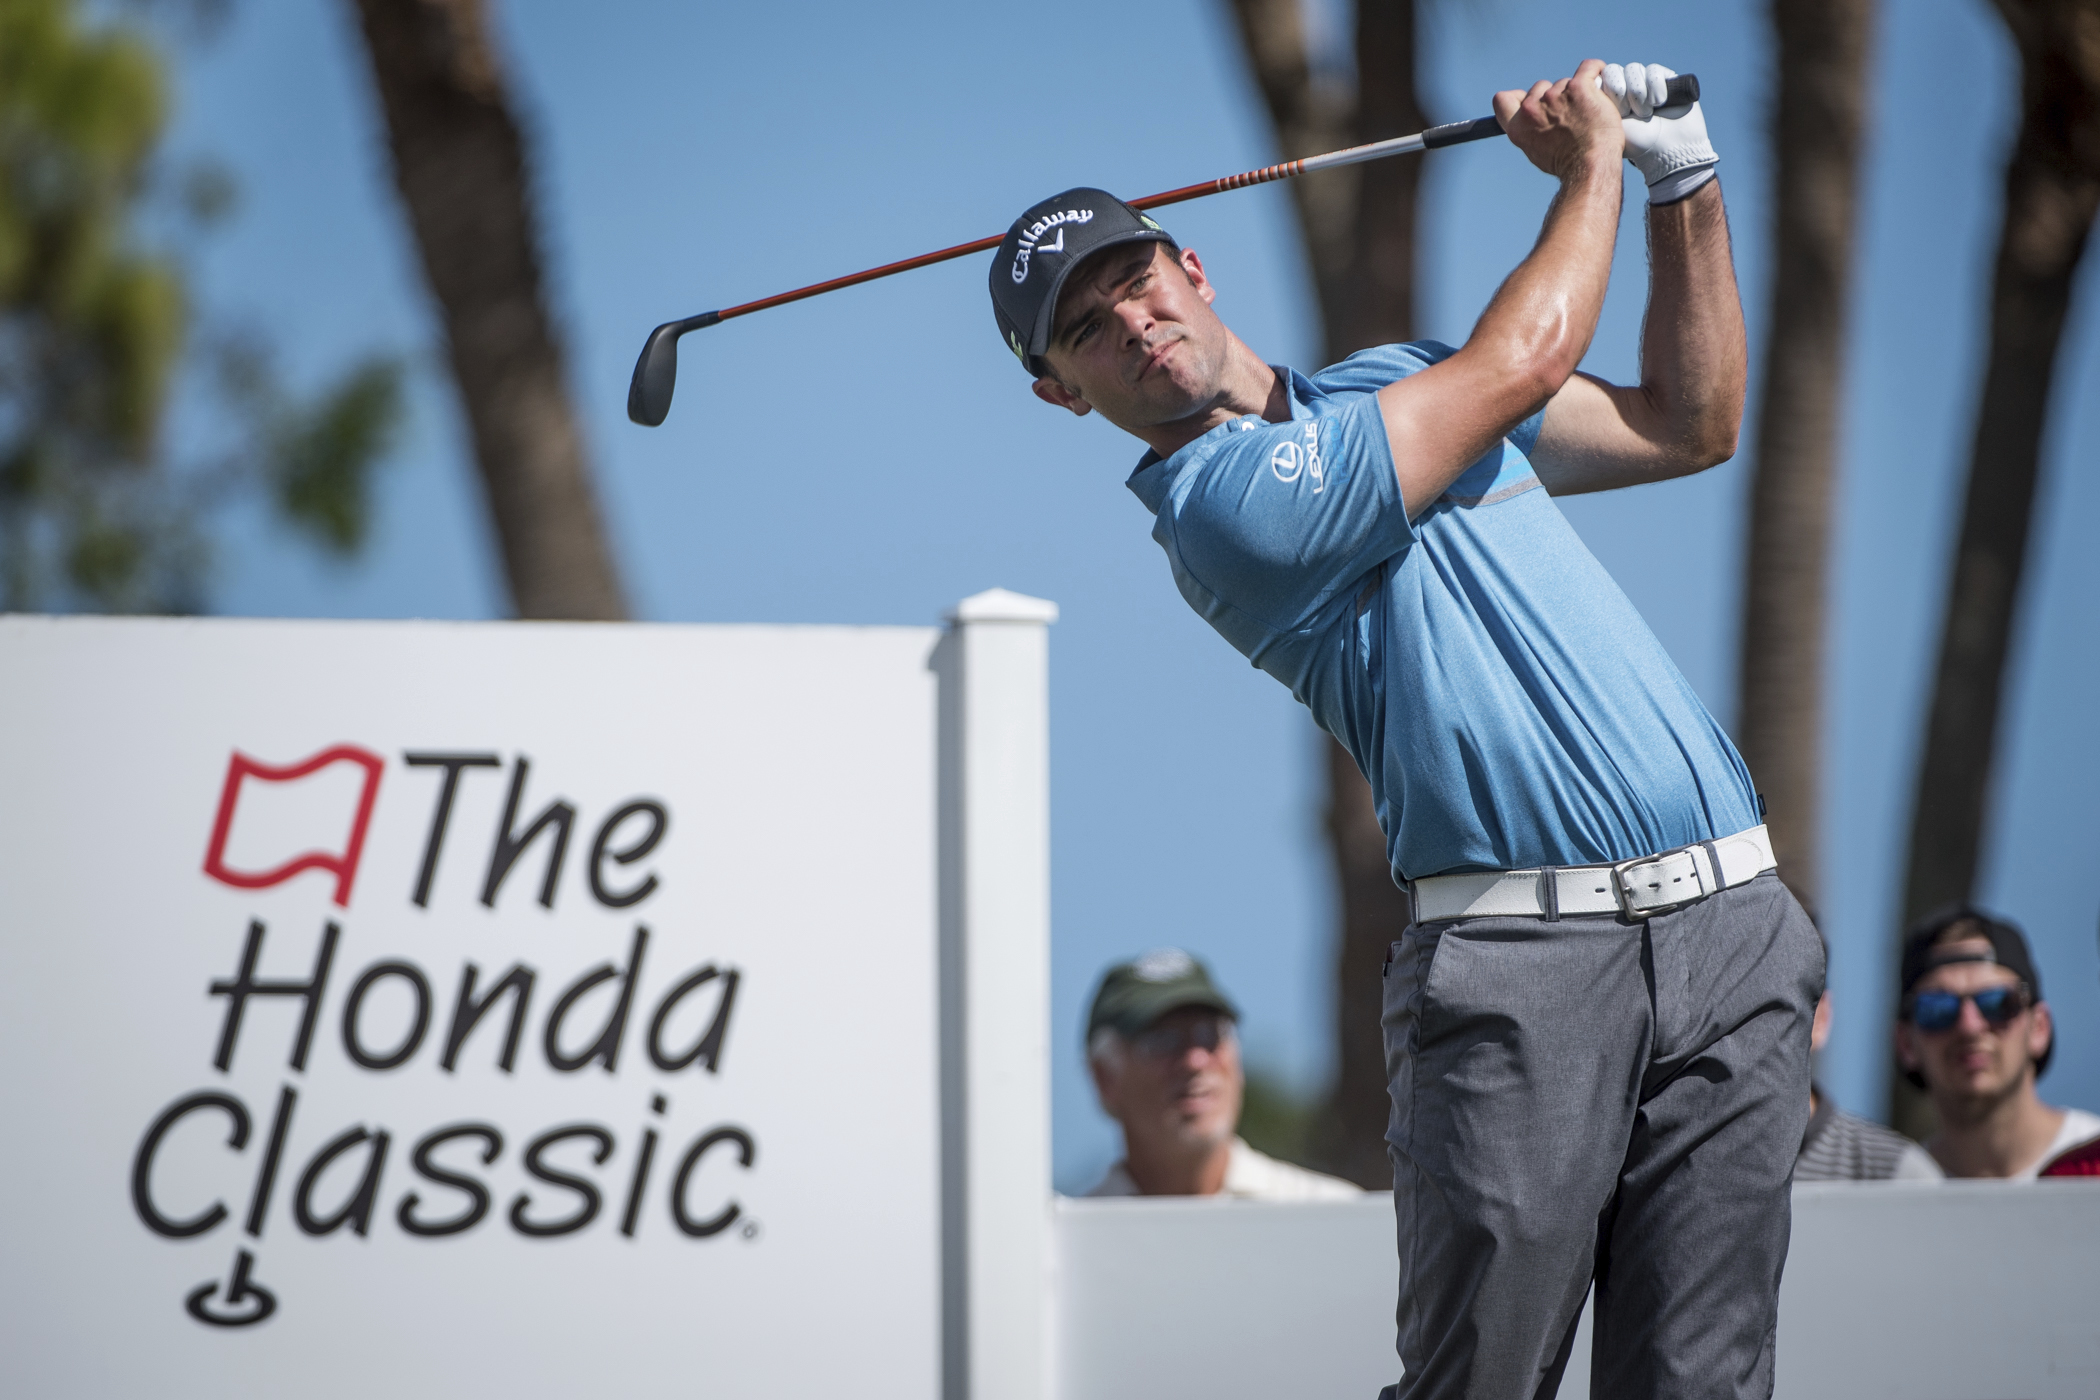 Golfer Wesley Bryan tees off on the fourth hole during the Honda Classic golf tournament in Palm Beach Gardens, Fla., on Friday, Feb. 24, 2017. (Michael Ares/The Palm Beach Post via AP)